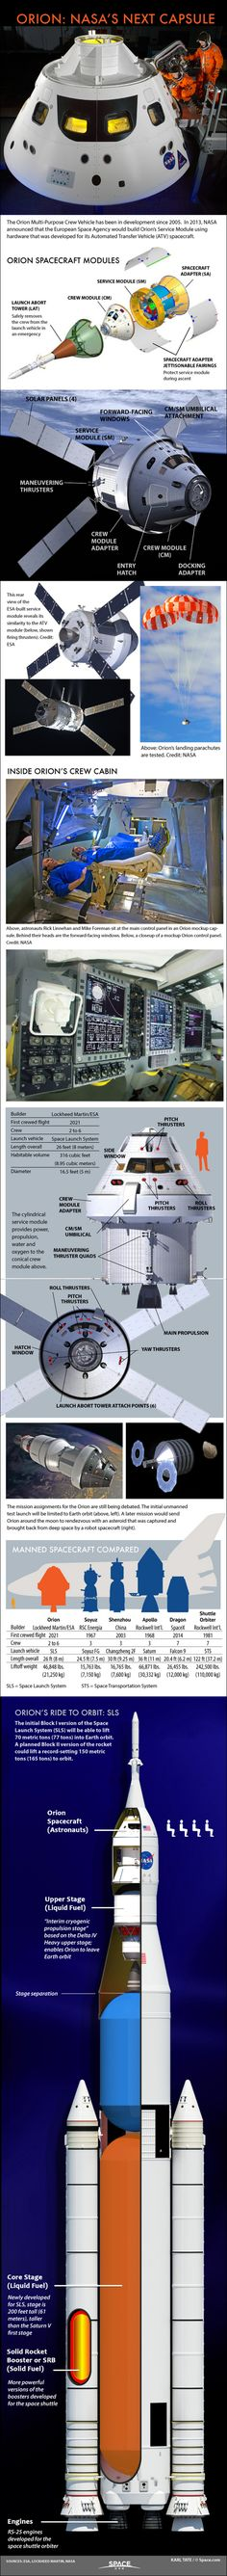 Orion Explained : NASA's Multi-Purpose Crew Vehicle (Infographic) - by : Karl…